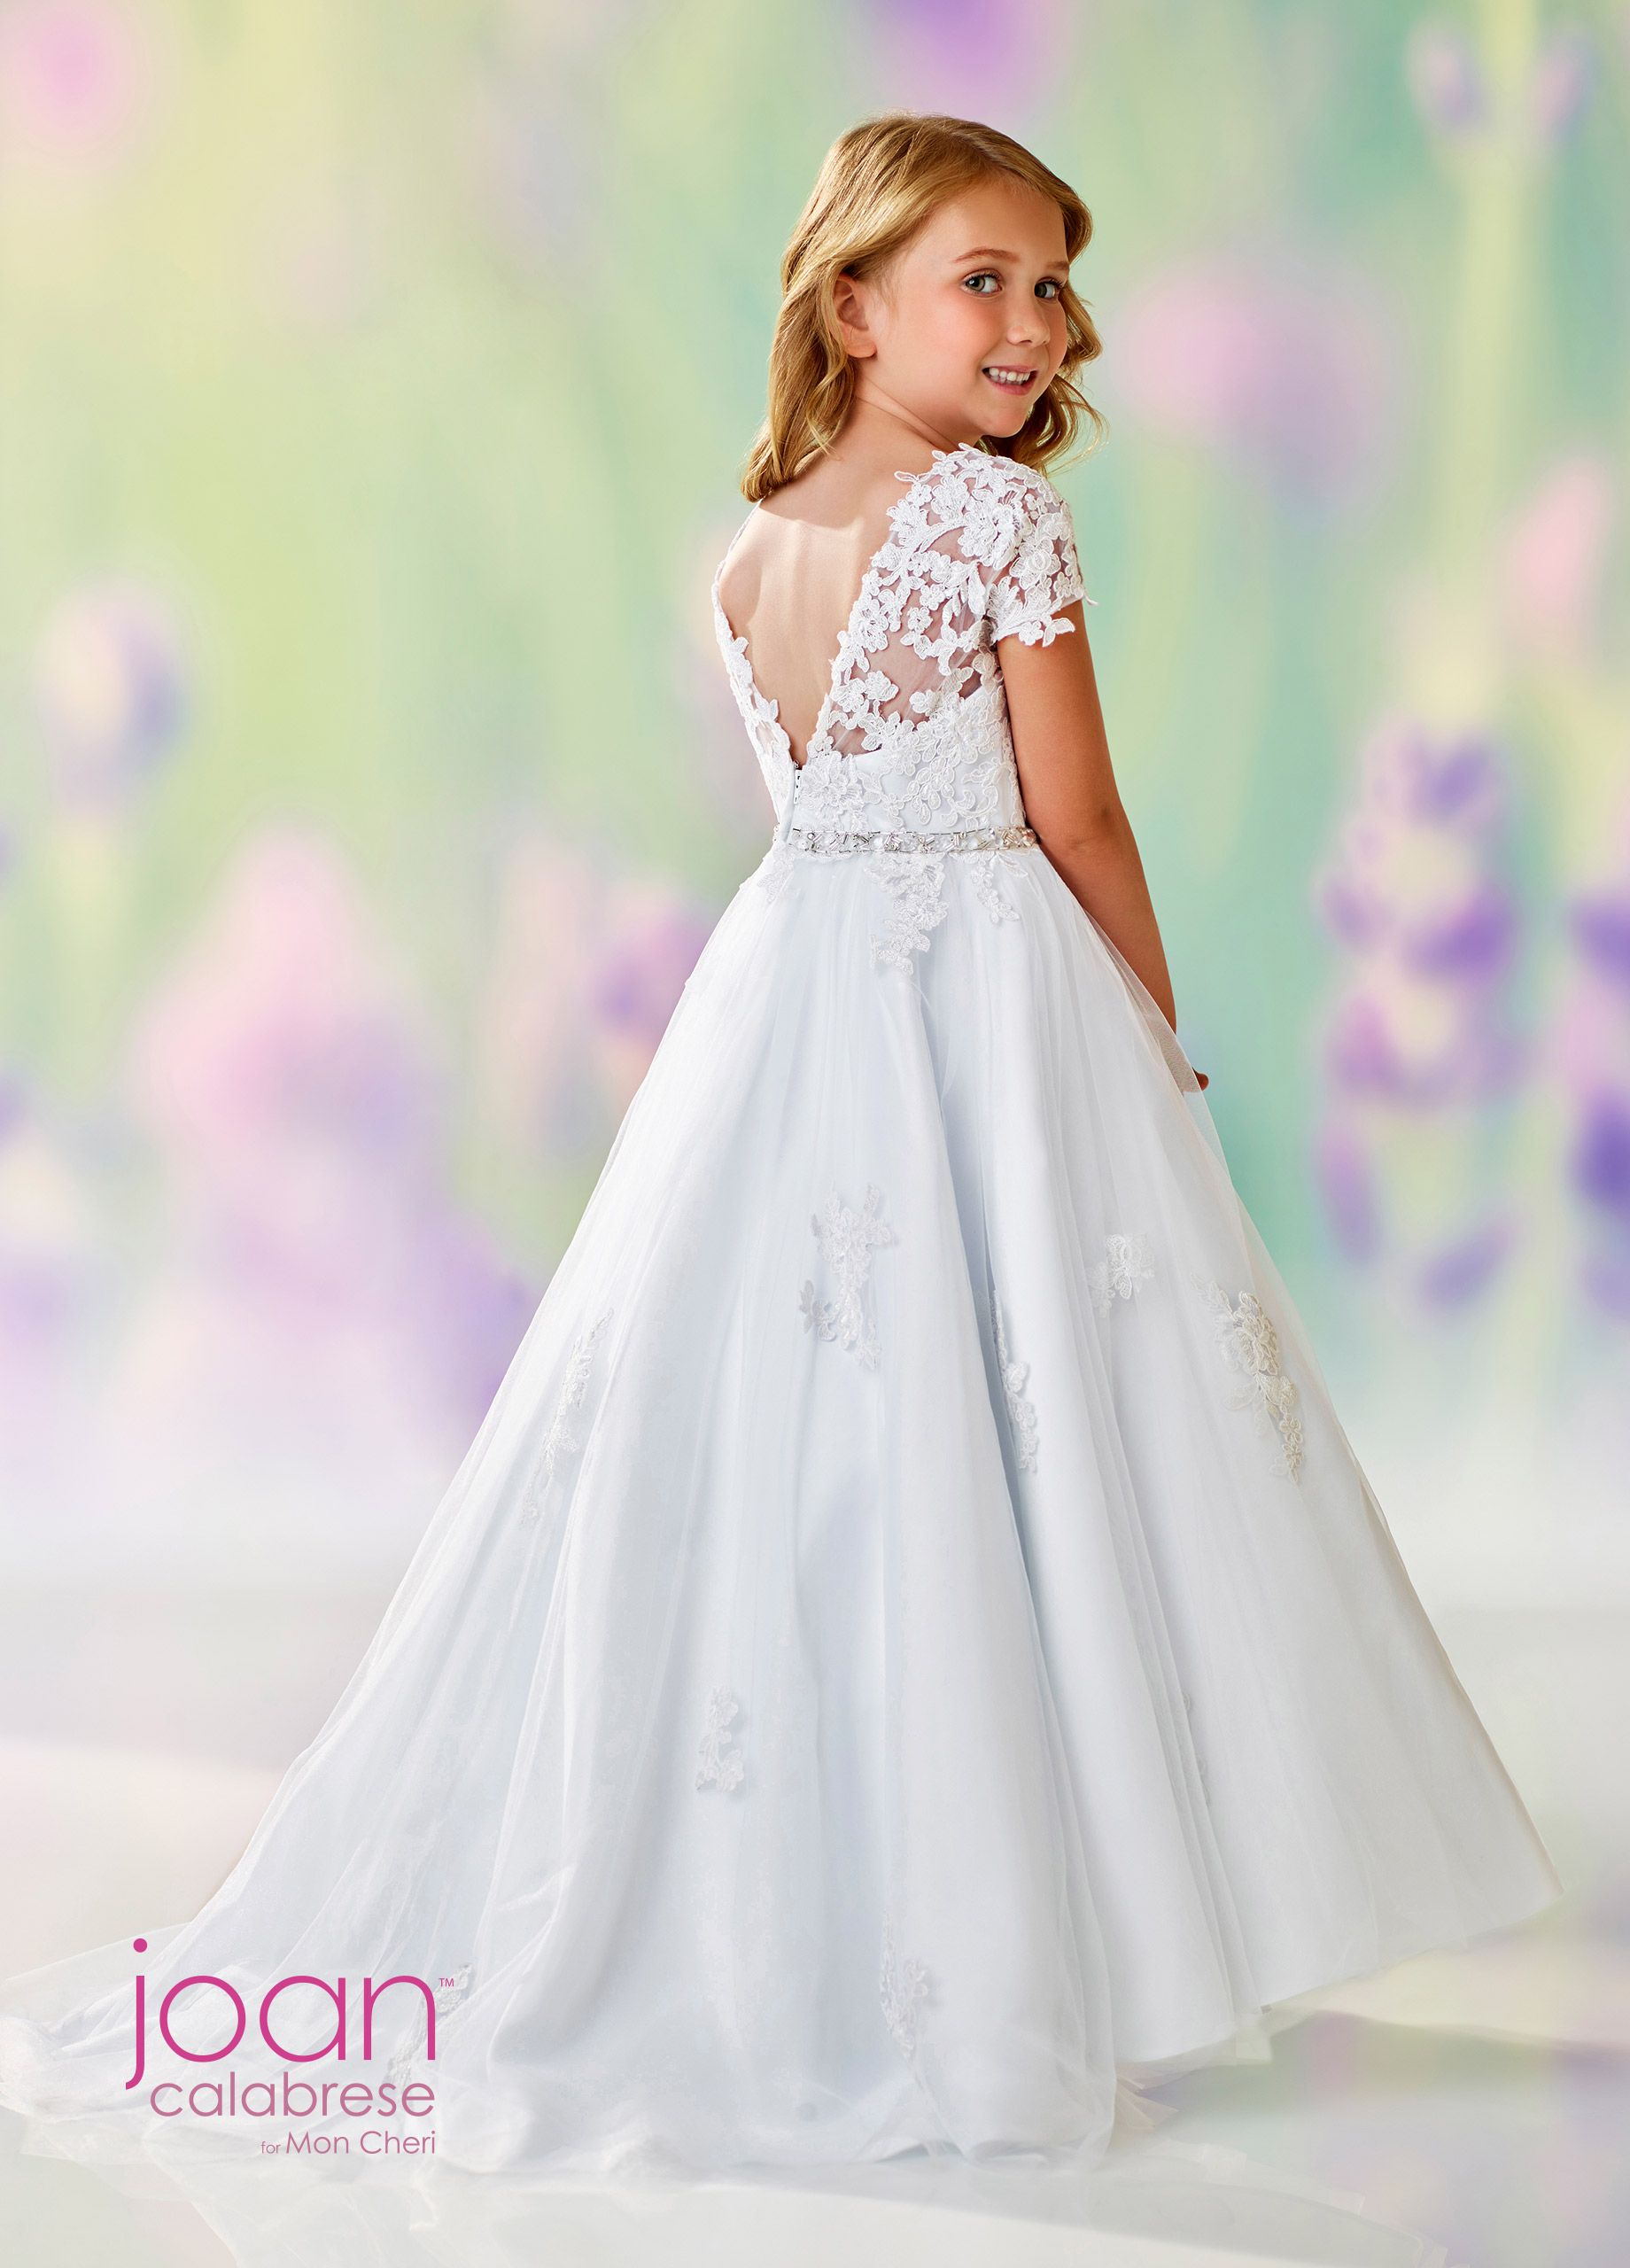 dfed66dabc Joan Calabrese Flower Girl Dresses - 118326